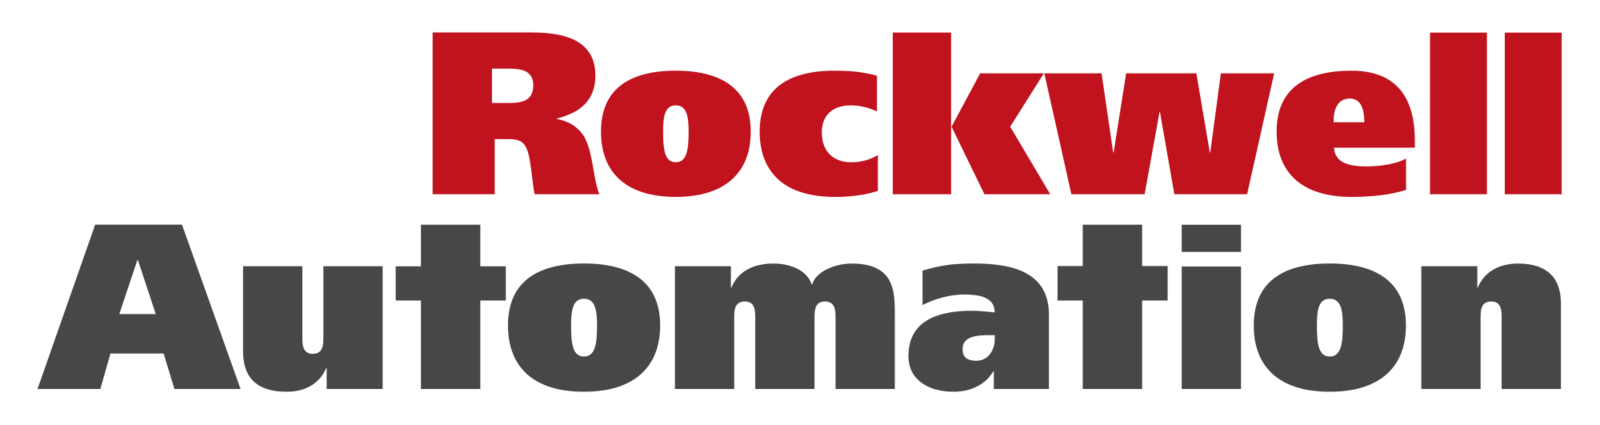 Rockwell_Automation_logo.svg.png